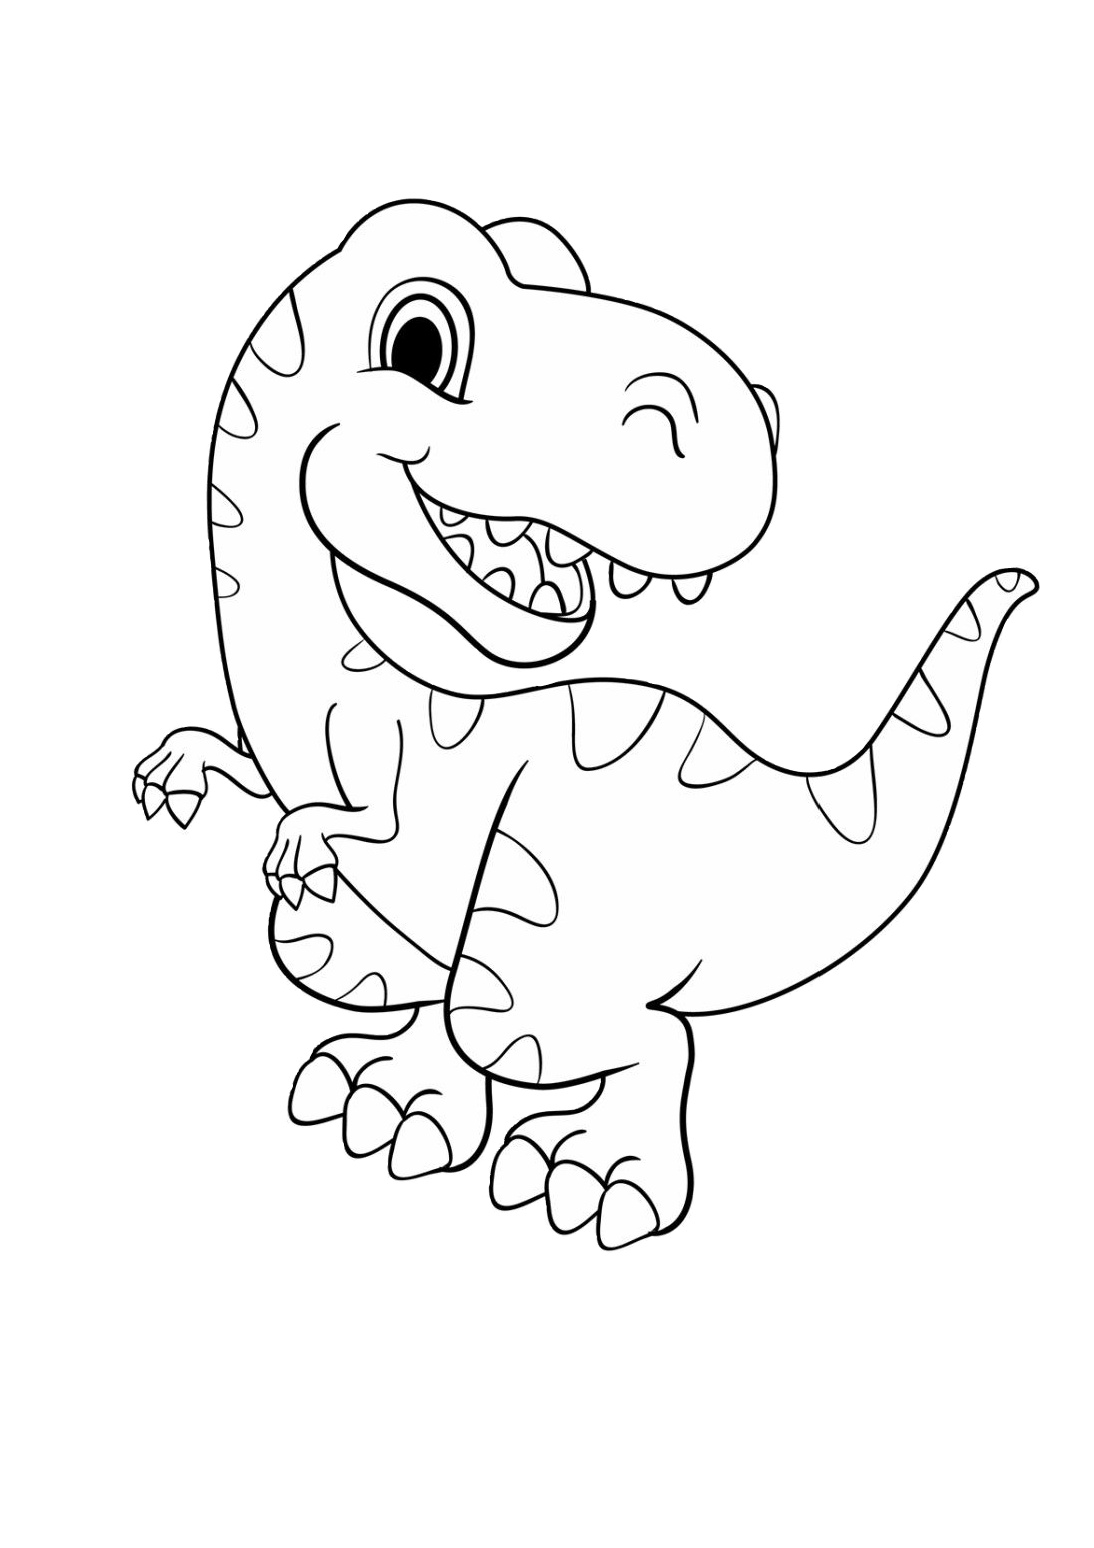 dinosaur coloring easy easy dinosaur coloring pages coloring home coloring dinosaur easy